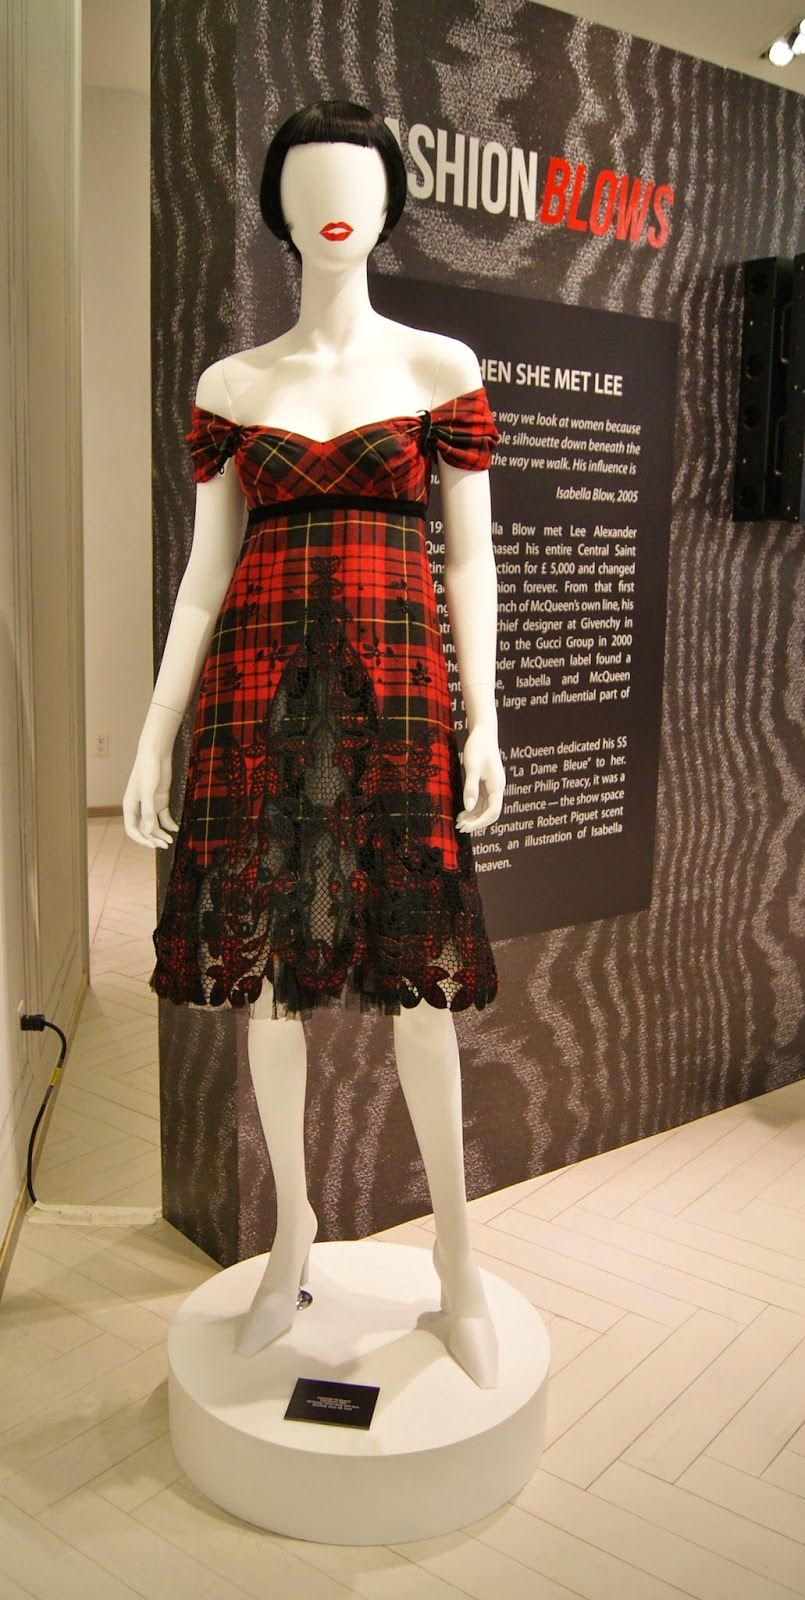 Fashion Blows Exhibit at Hudson's Bay in Toronto, Isabella, Daupne Guinness, Style, Culture, foundation, alexander mcqueen, philip treacy, suicide,the purple scarf, melanie.ps, ontario, canada, the room, tartan dress, fall/winter